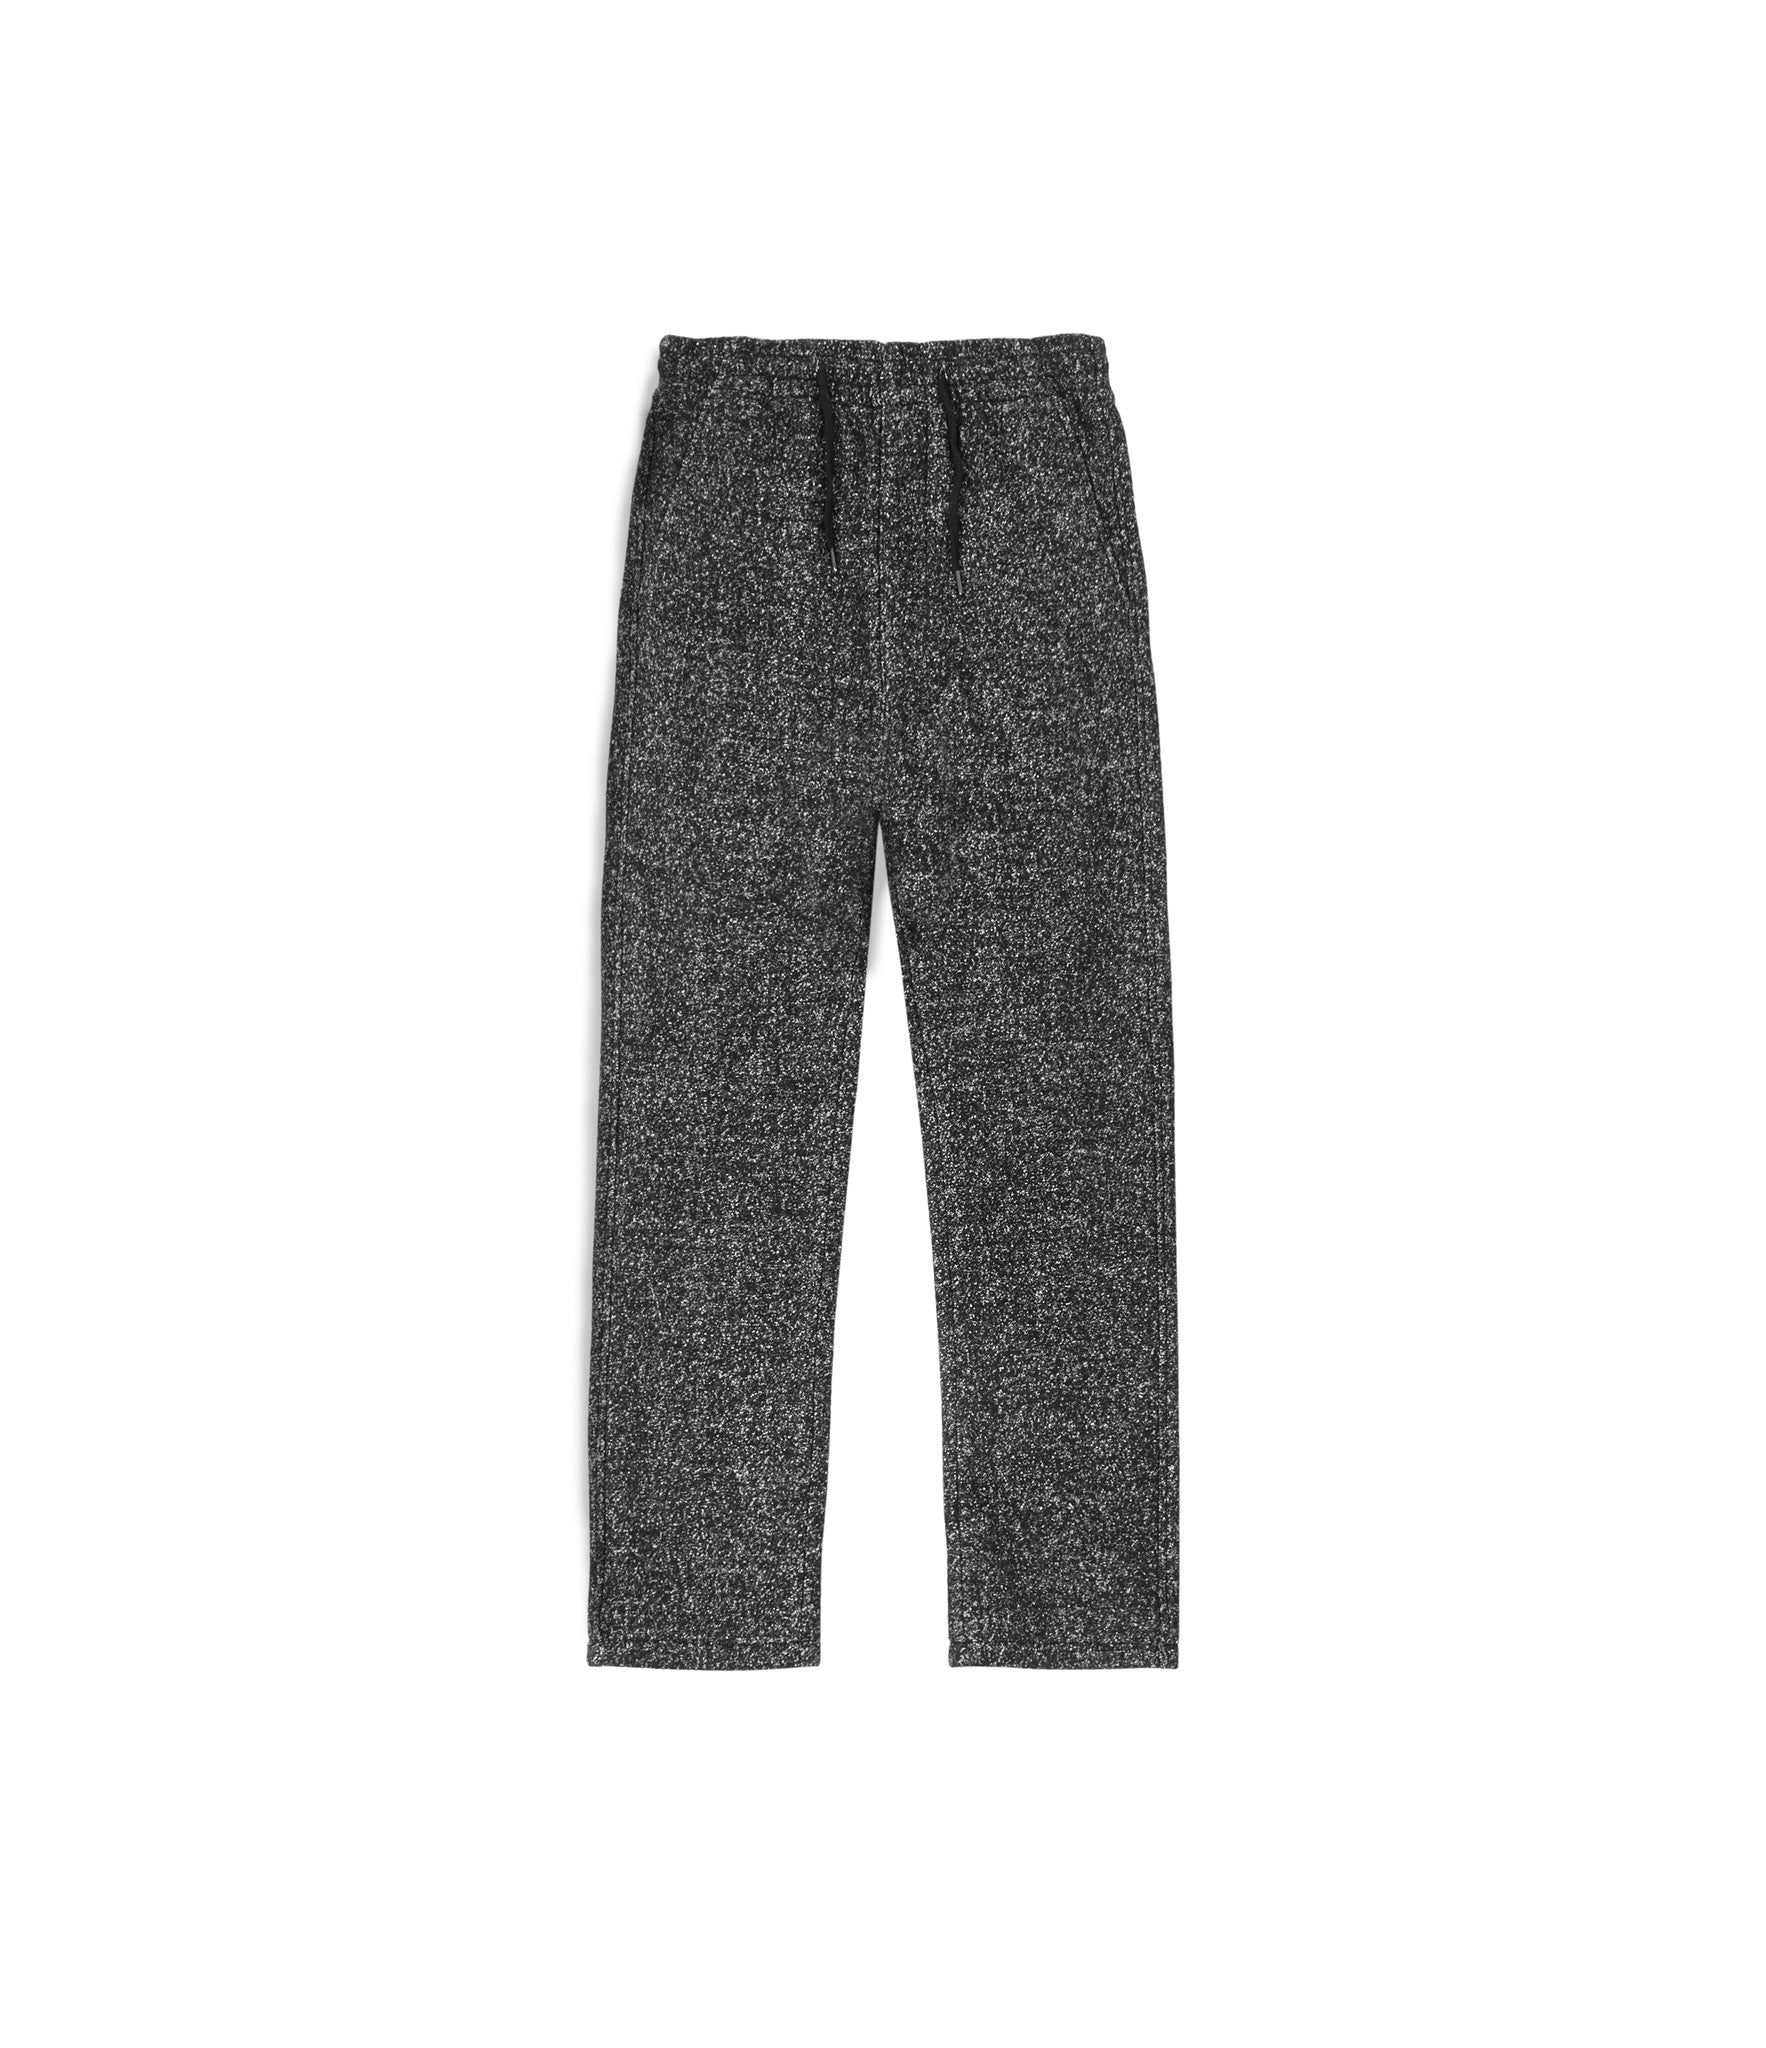 TR254 Mélange Wool Cropped Pants - Black - underated london - underatedco - 2